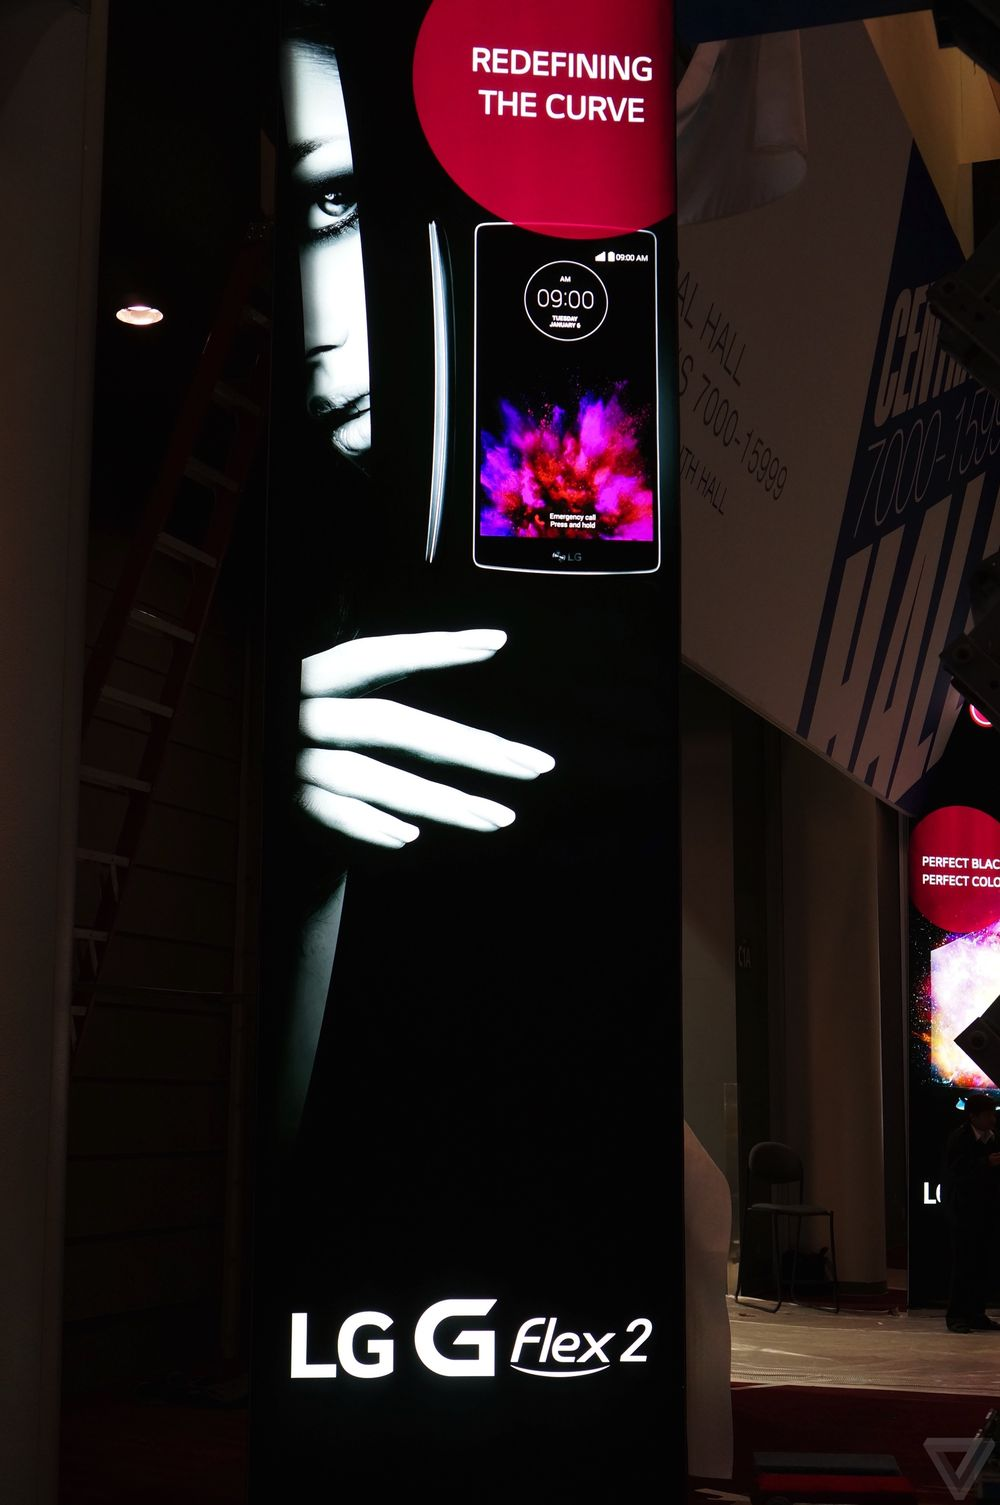 LG G Flex 2 Leaked Out Ahead Of CES 2015 Launch